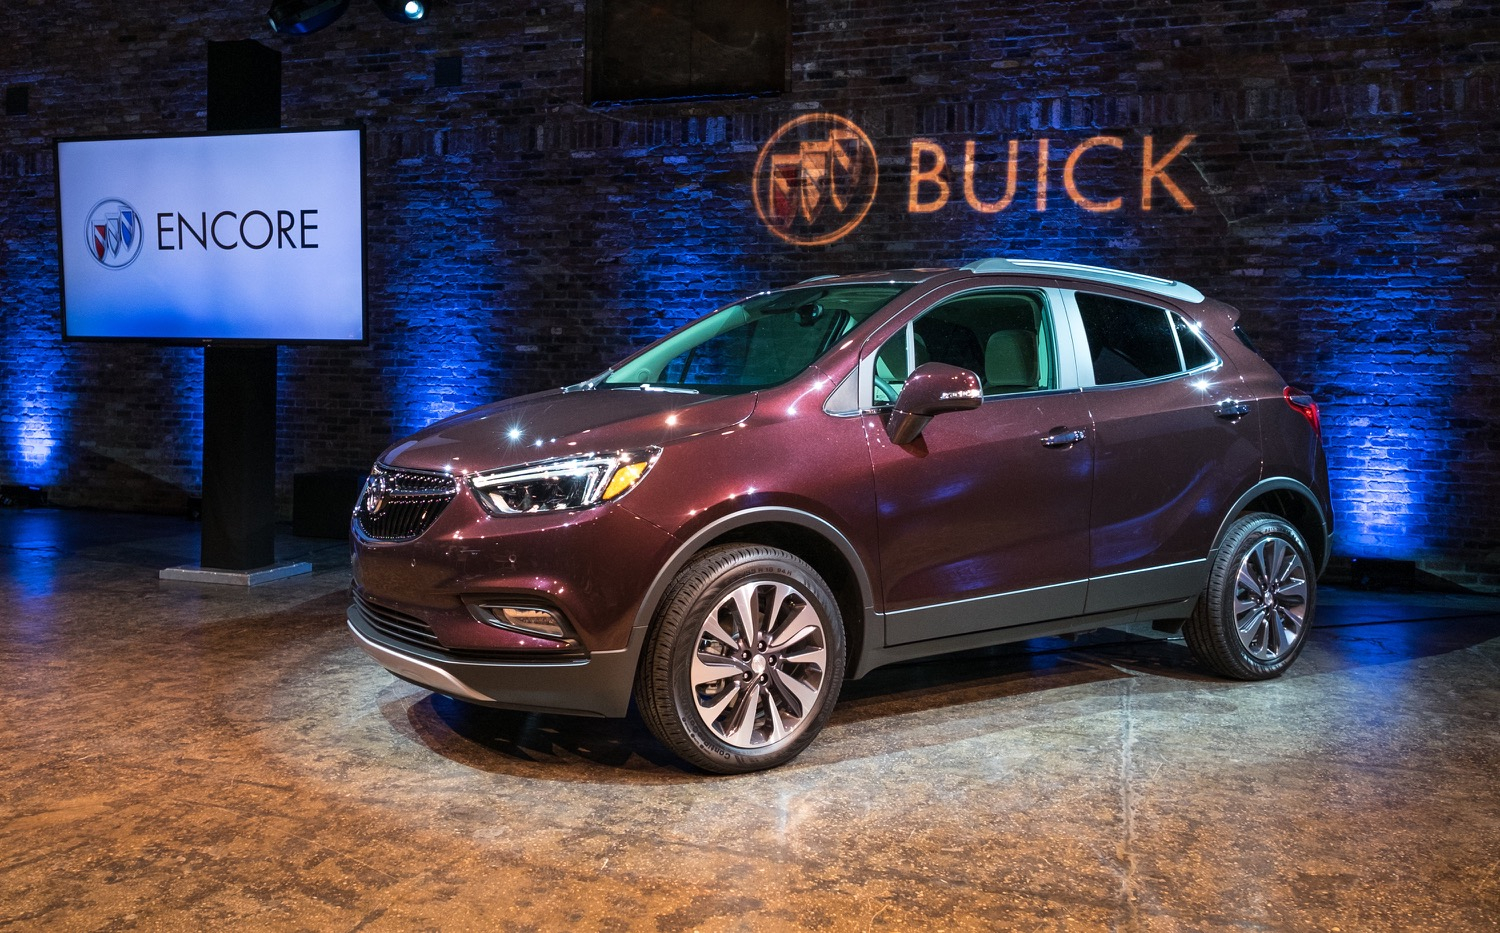 2019 Buick Encore Exterior Colors | Gm Authority New 2022 Buick Encore Colors, Interior, Awd